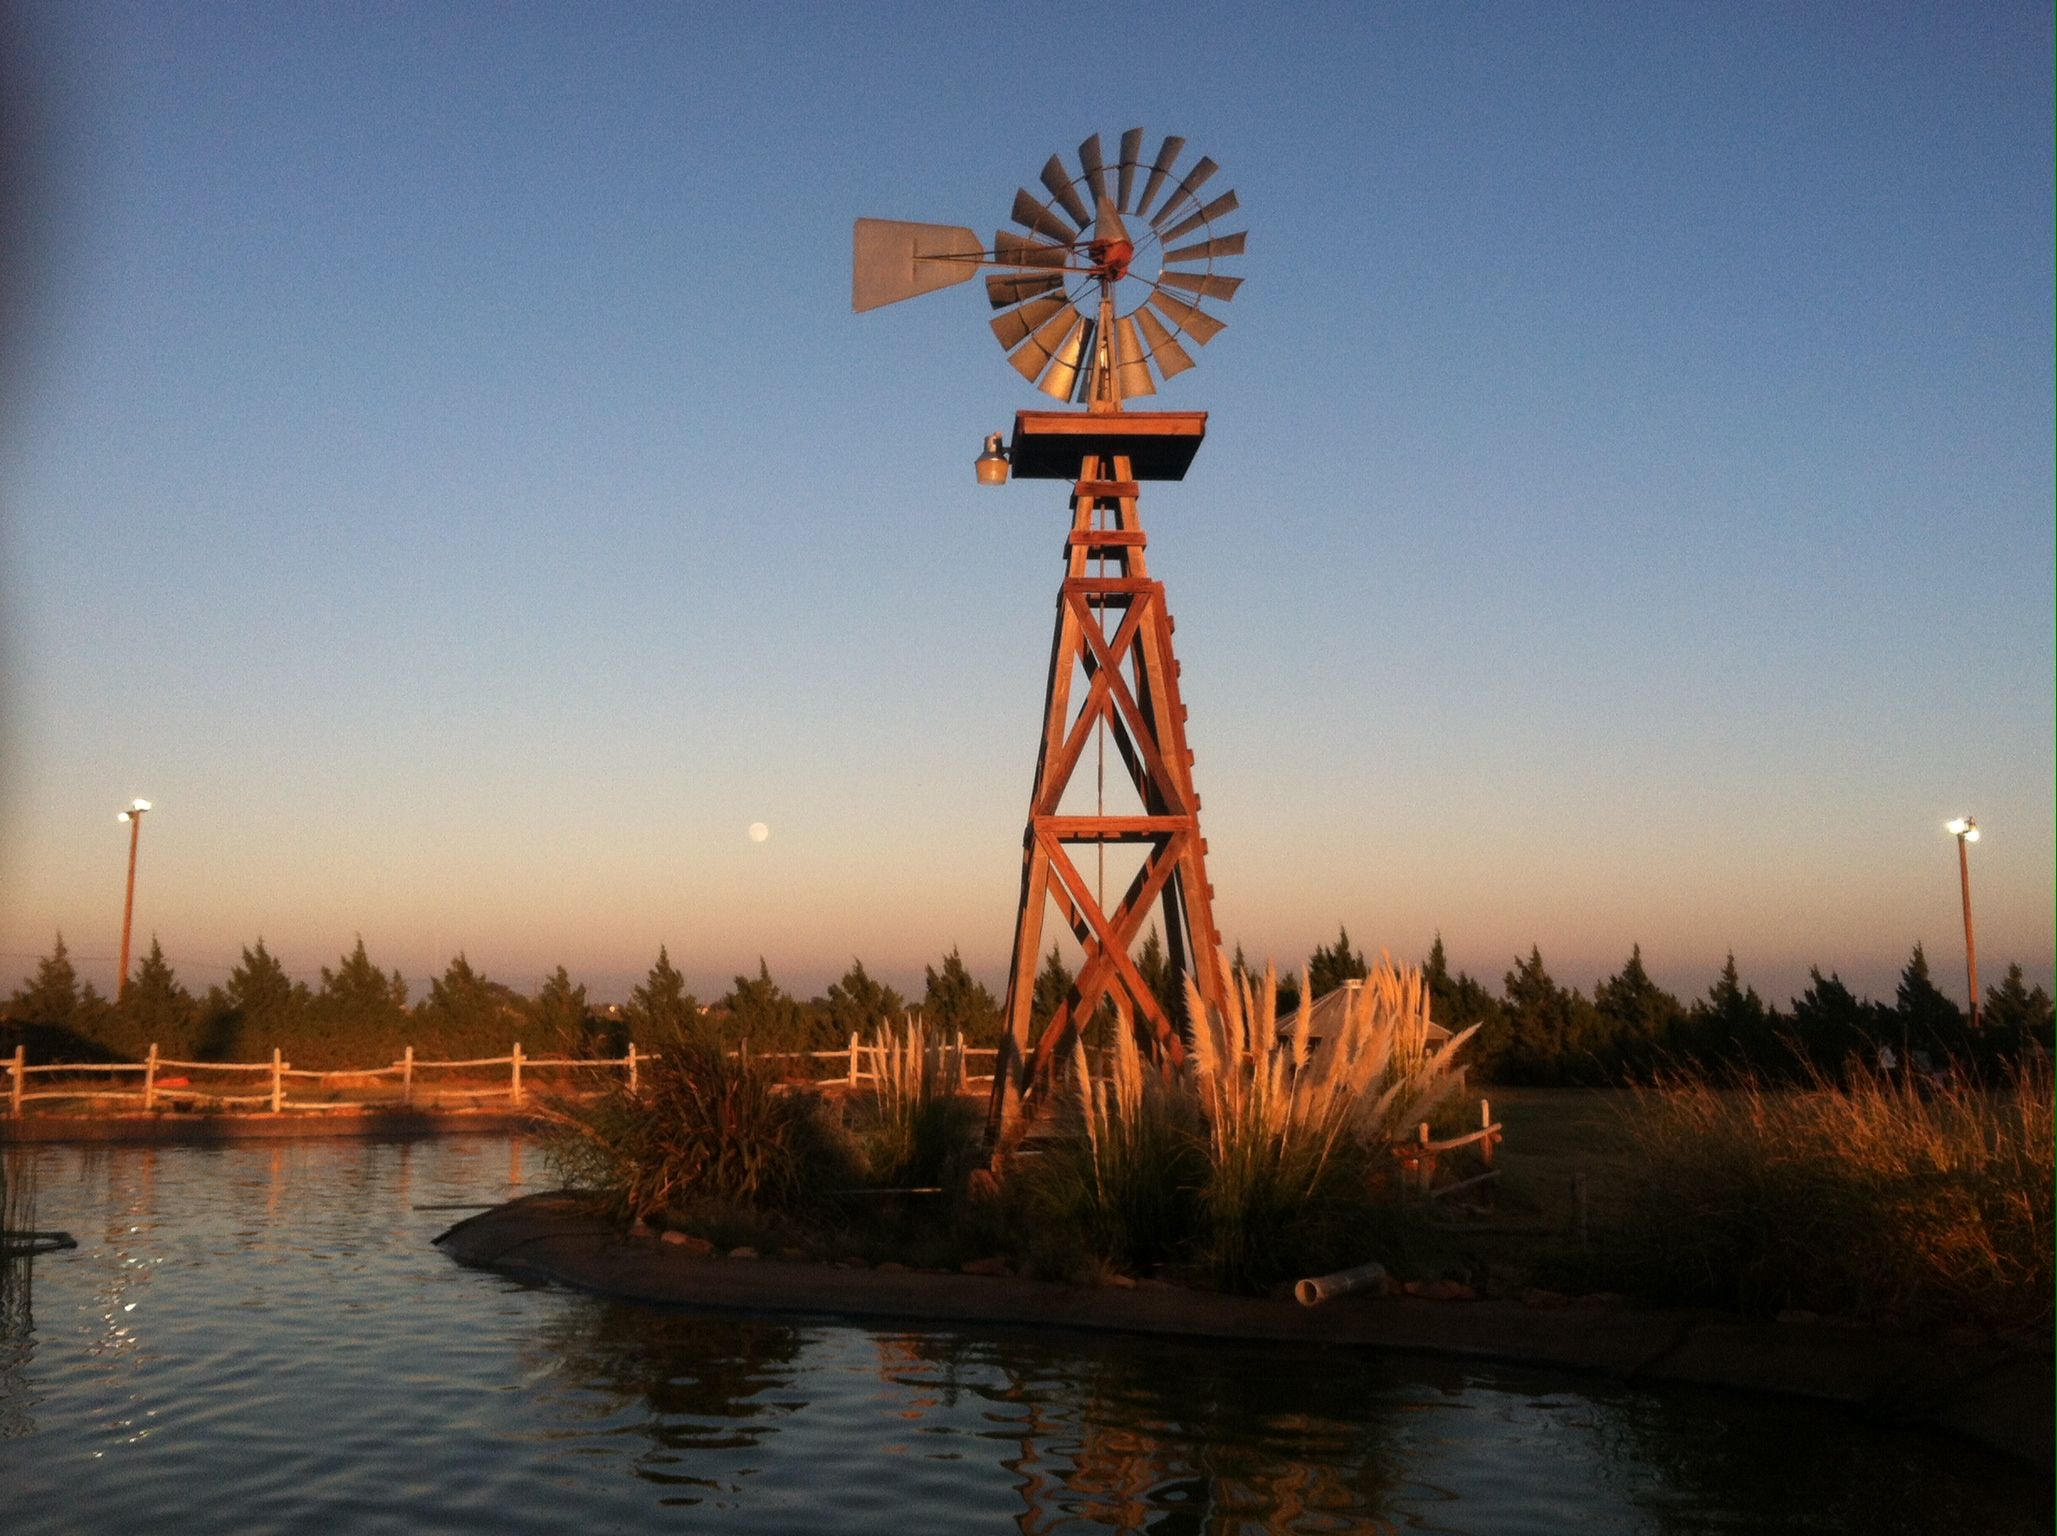 At'l Do Farms Windmill w/Full Moon | Windmills & Outhouses